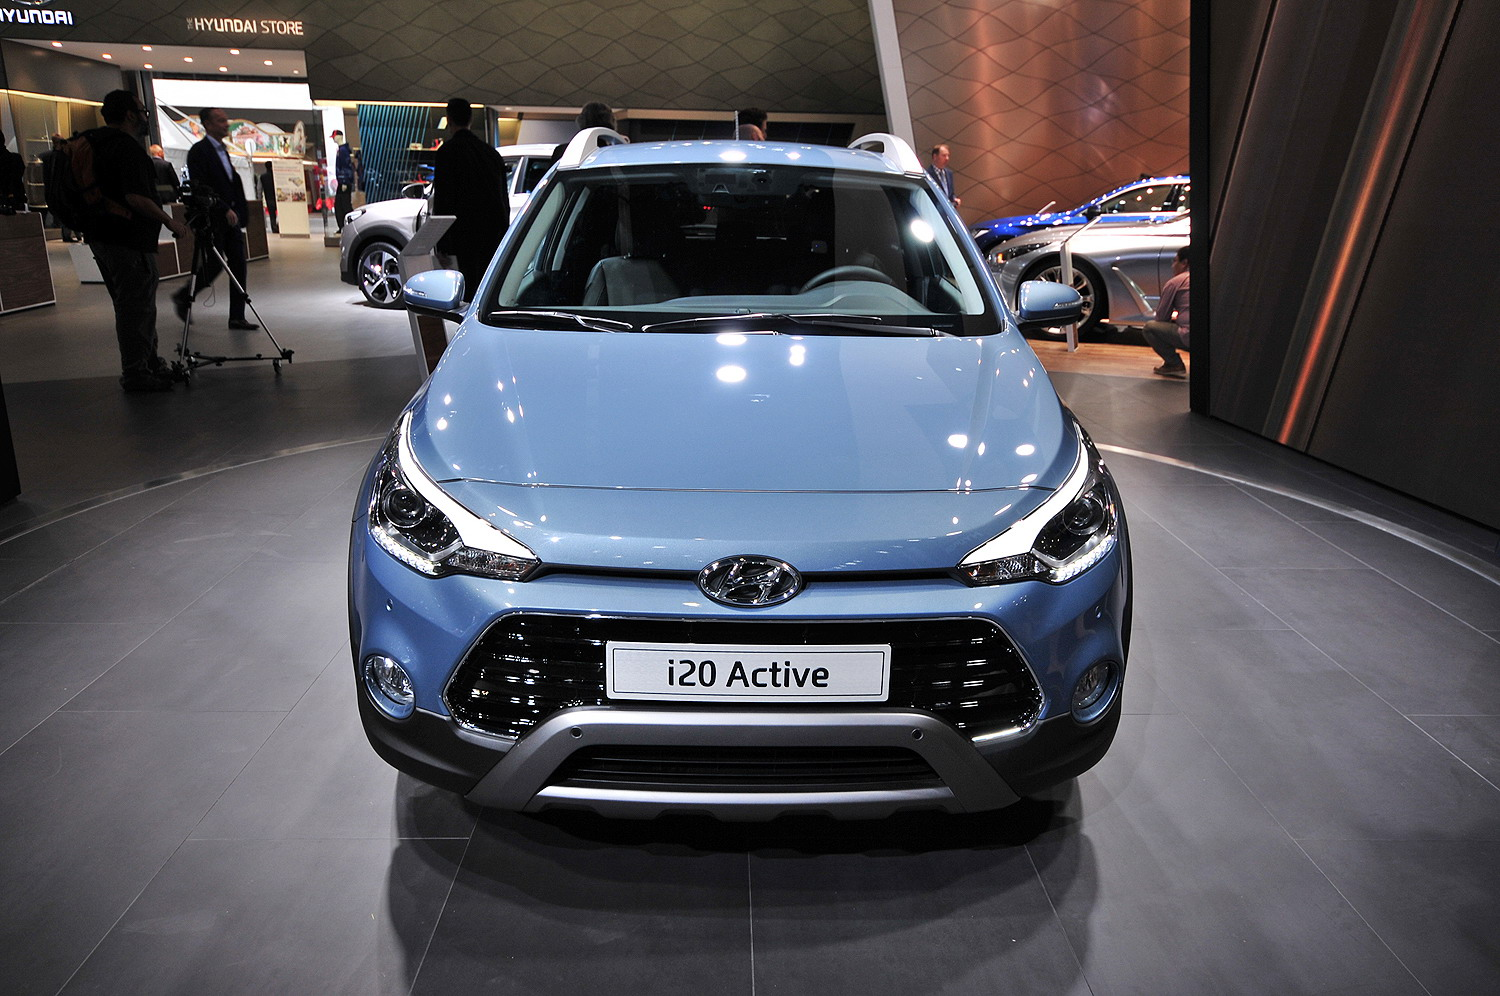 2016 hyundai i20 active gallery 647419 top speed. Black Bedroom Furniture Sets. Home Design Ideas